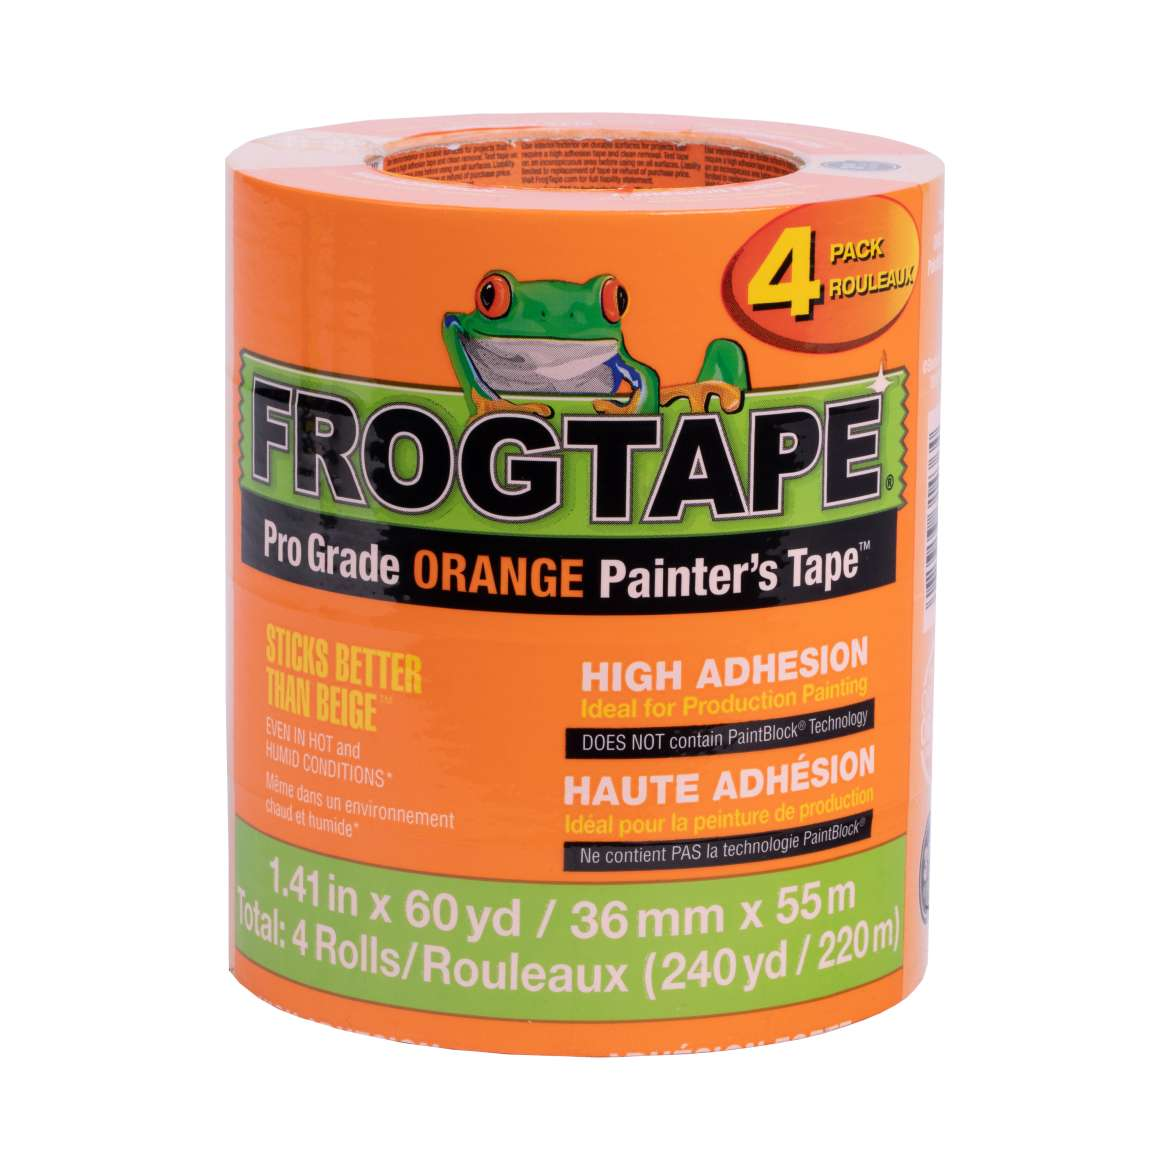 FrogTape® Pro Grade Orange Painter's Tape™ – Orange, 4 pk, 1.41 in. x 60 yd.